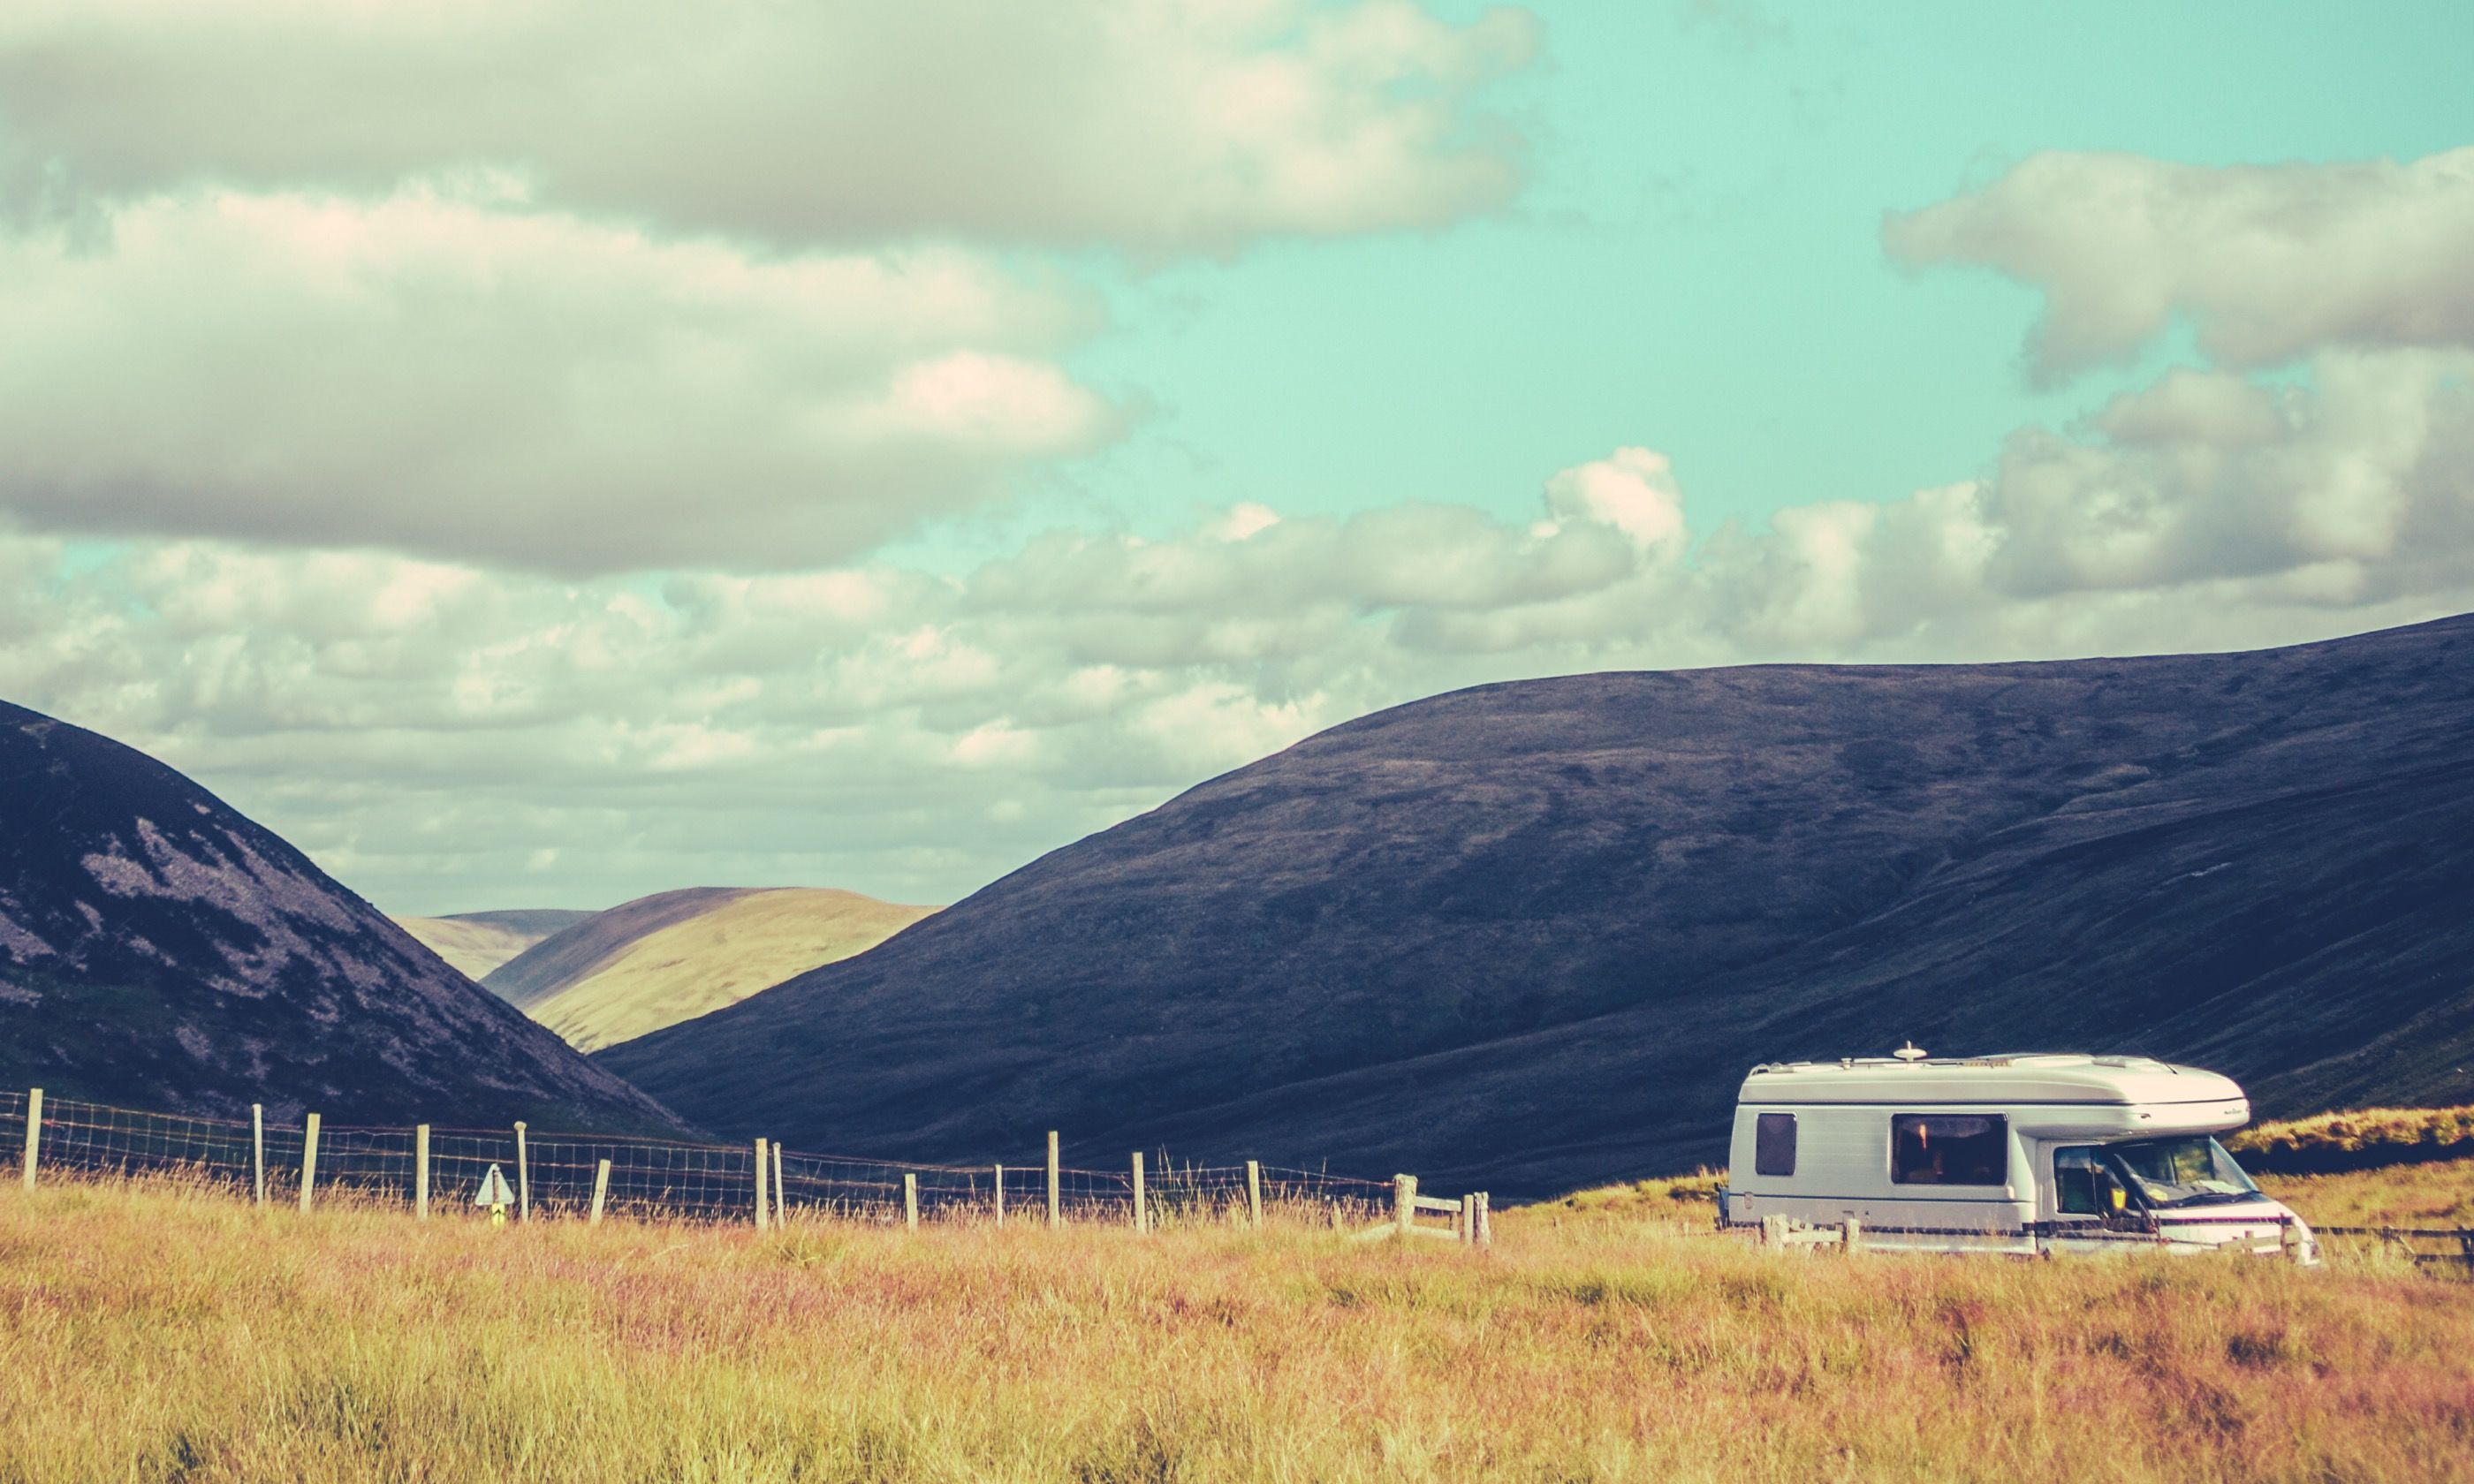 Campervan in Scotland (Shutterstock.com)